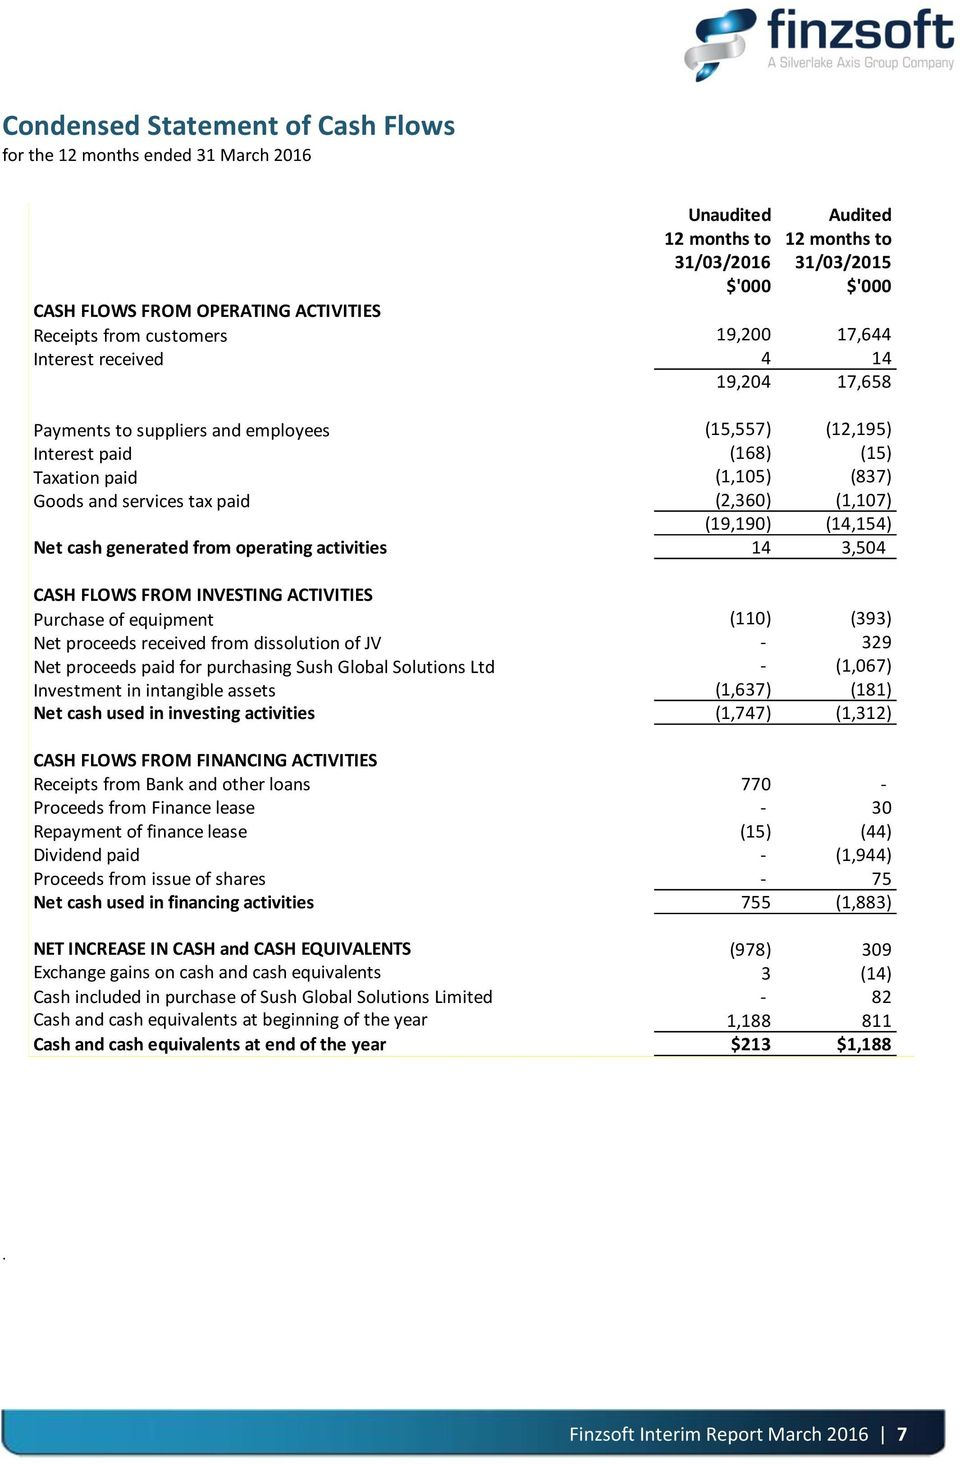 Net cash generated from operating activities 14 3,504 CASH FLOWS FROM INVESTING ACTIVITIES Purchase of equipment (110) (393) Net proceeds received from dissolution of JV - 329 Net proceeds paid for